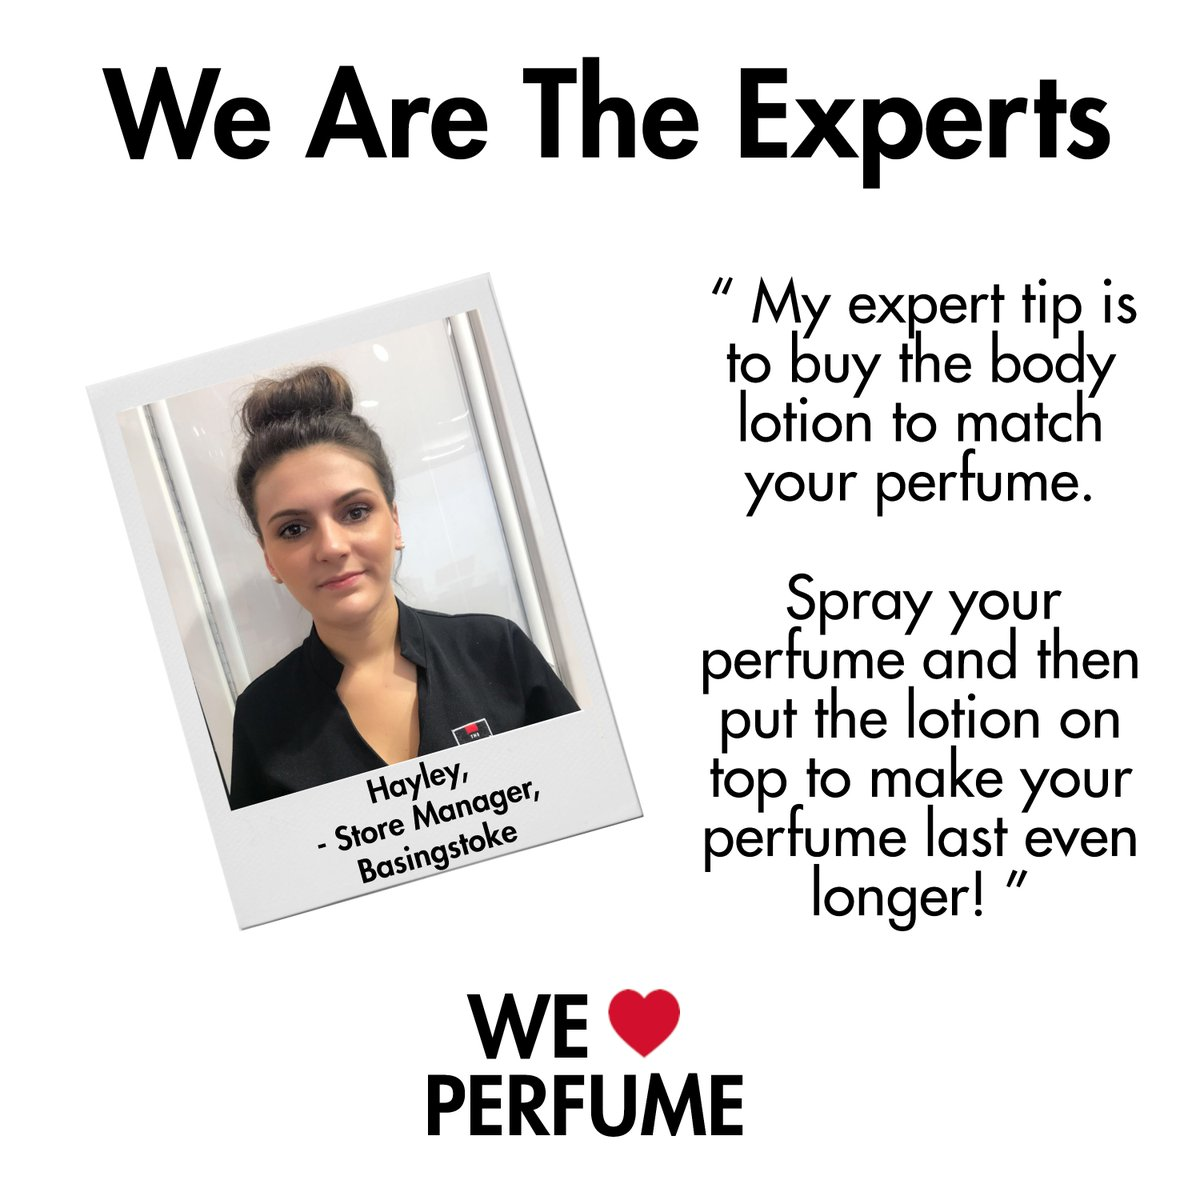 Here&#39;s Hayley, Manager of our Basingstoke store, with her expert tip! Find out more from our experts here  http:// bit.ly/2wABrOj  &nbsp;   #Expertise <br>http://pic.twitter.com/gU9NjqGXuY